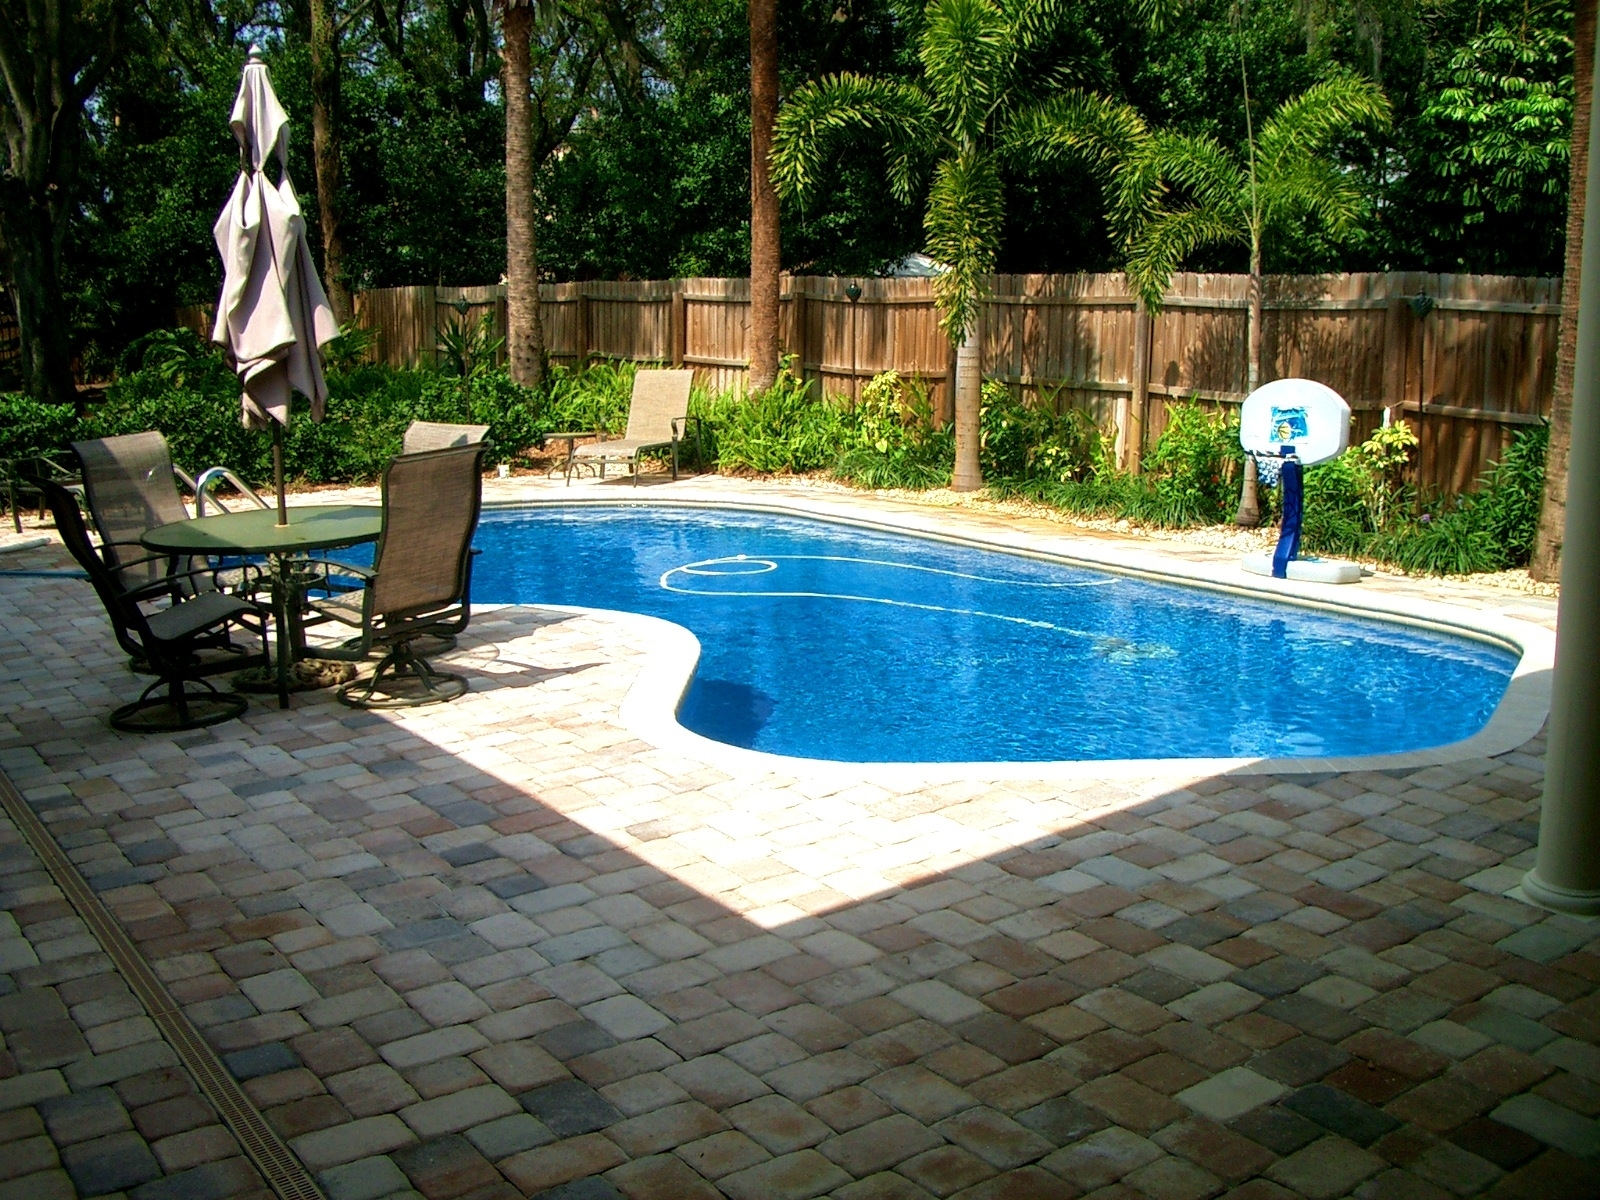 Pool Garden Design Inspirational Decoration Remarkable Backyard in Backyard Garden And Pool Ideas